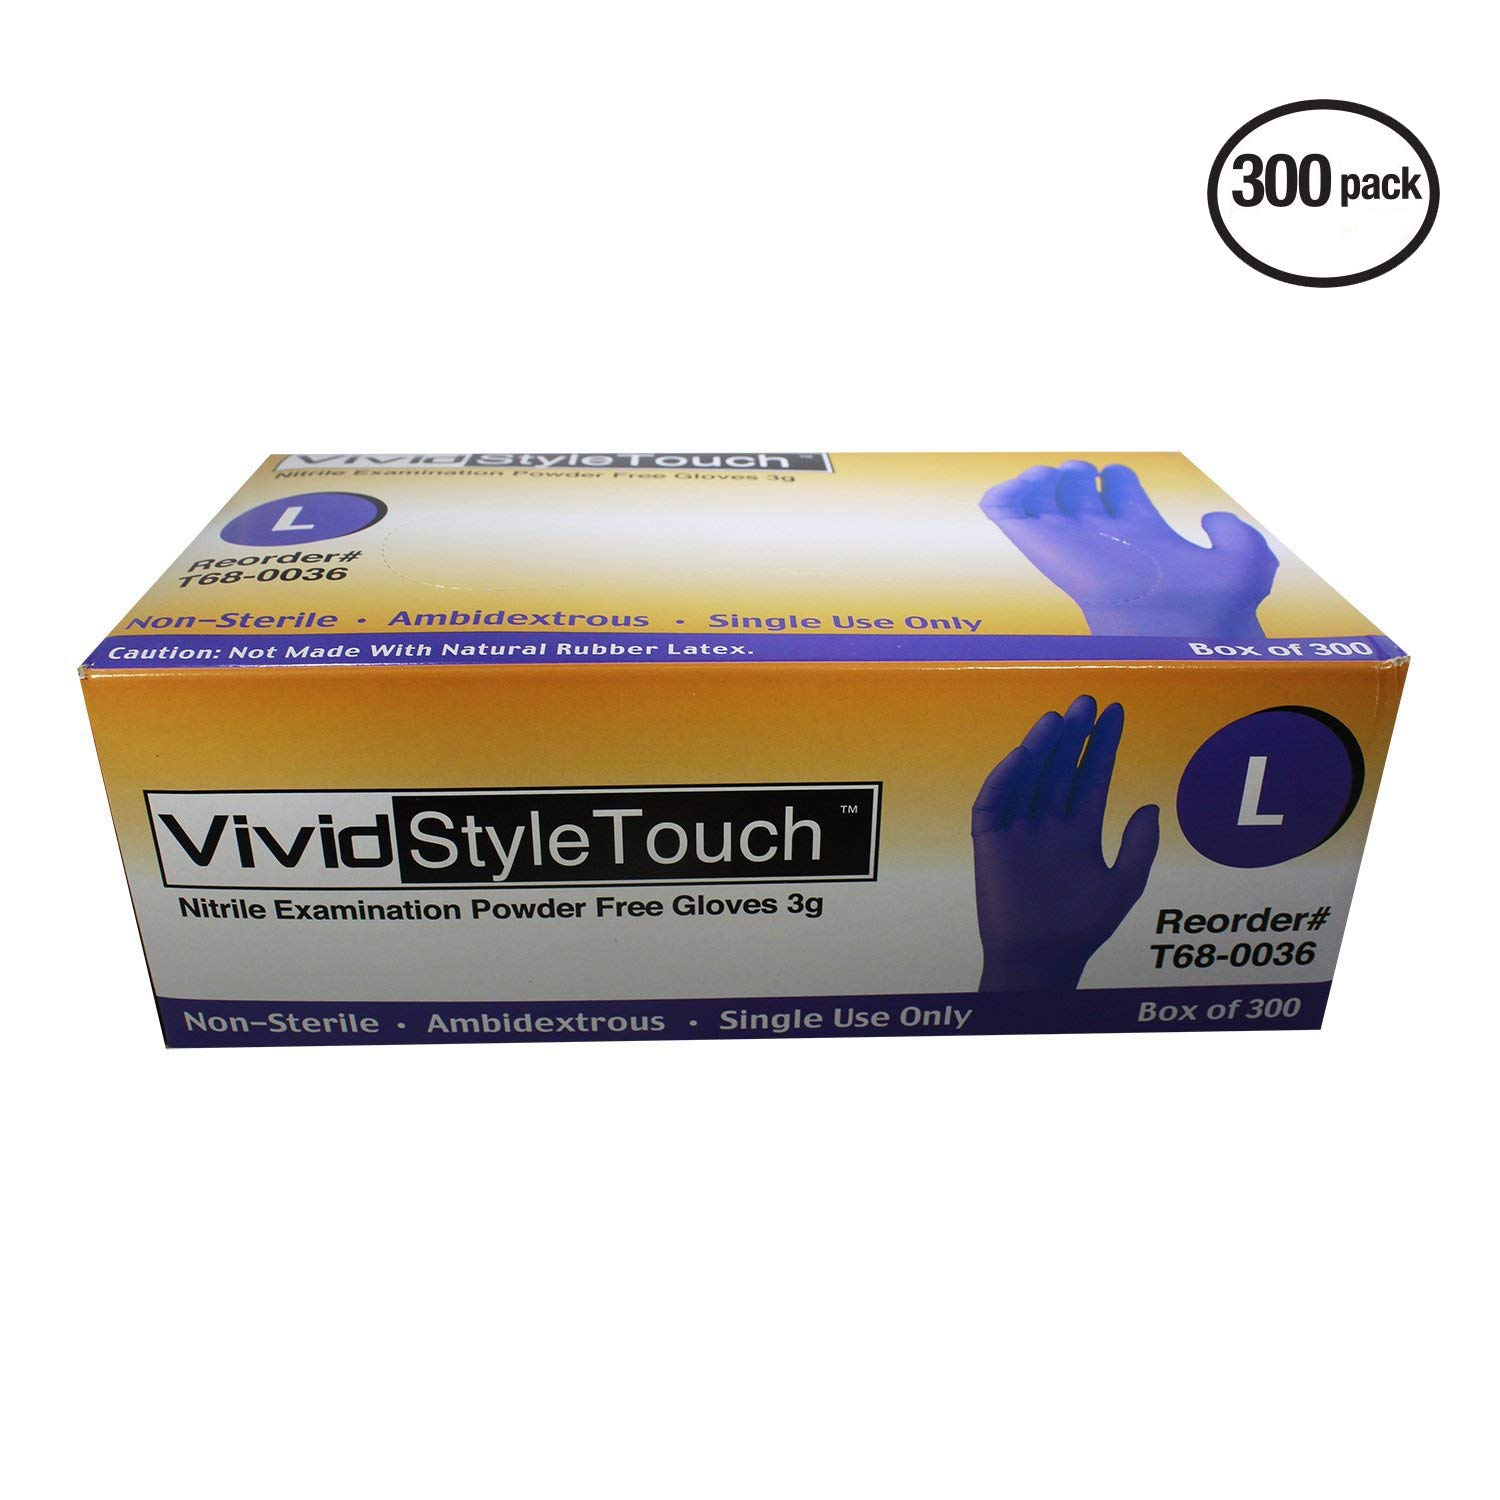 VIVID StyleTouch Purple Nitrile Latex Non Sterile Gloves – for Home, Medical, Professional Use – Disposable – Food Safe, Rubber Free – 2.7 mil, Pack of 300 (Large), StyleTouch by Vivid (Image #2)